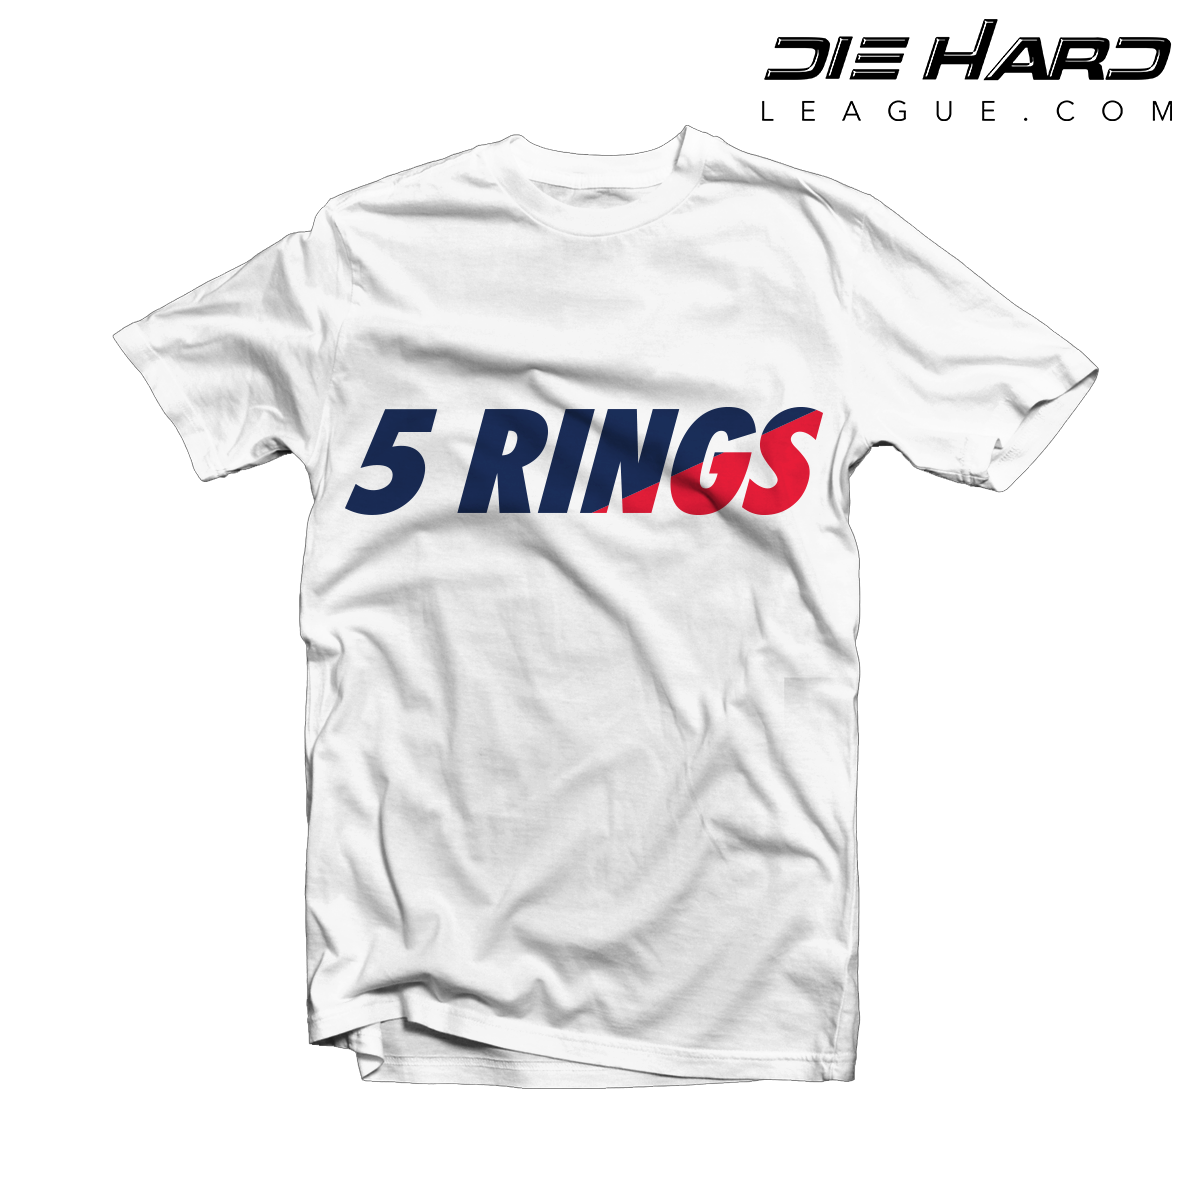 Patriots Shirt - New England Patriots 5 Rings White Tee f66b64fbcac5